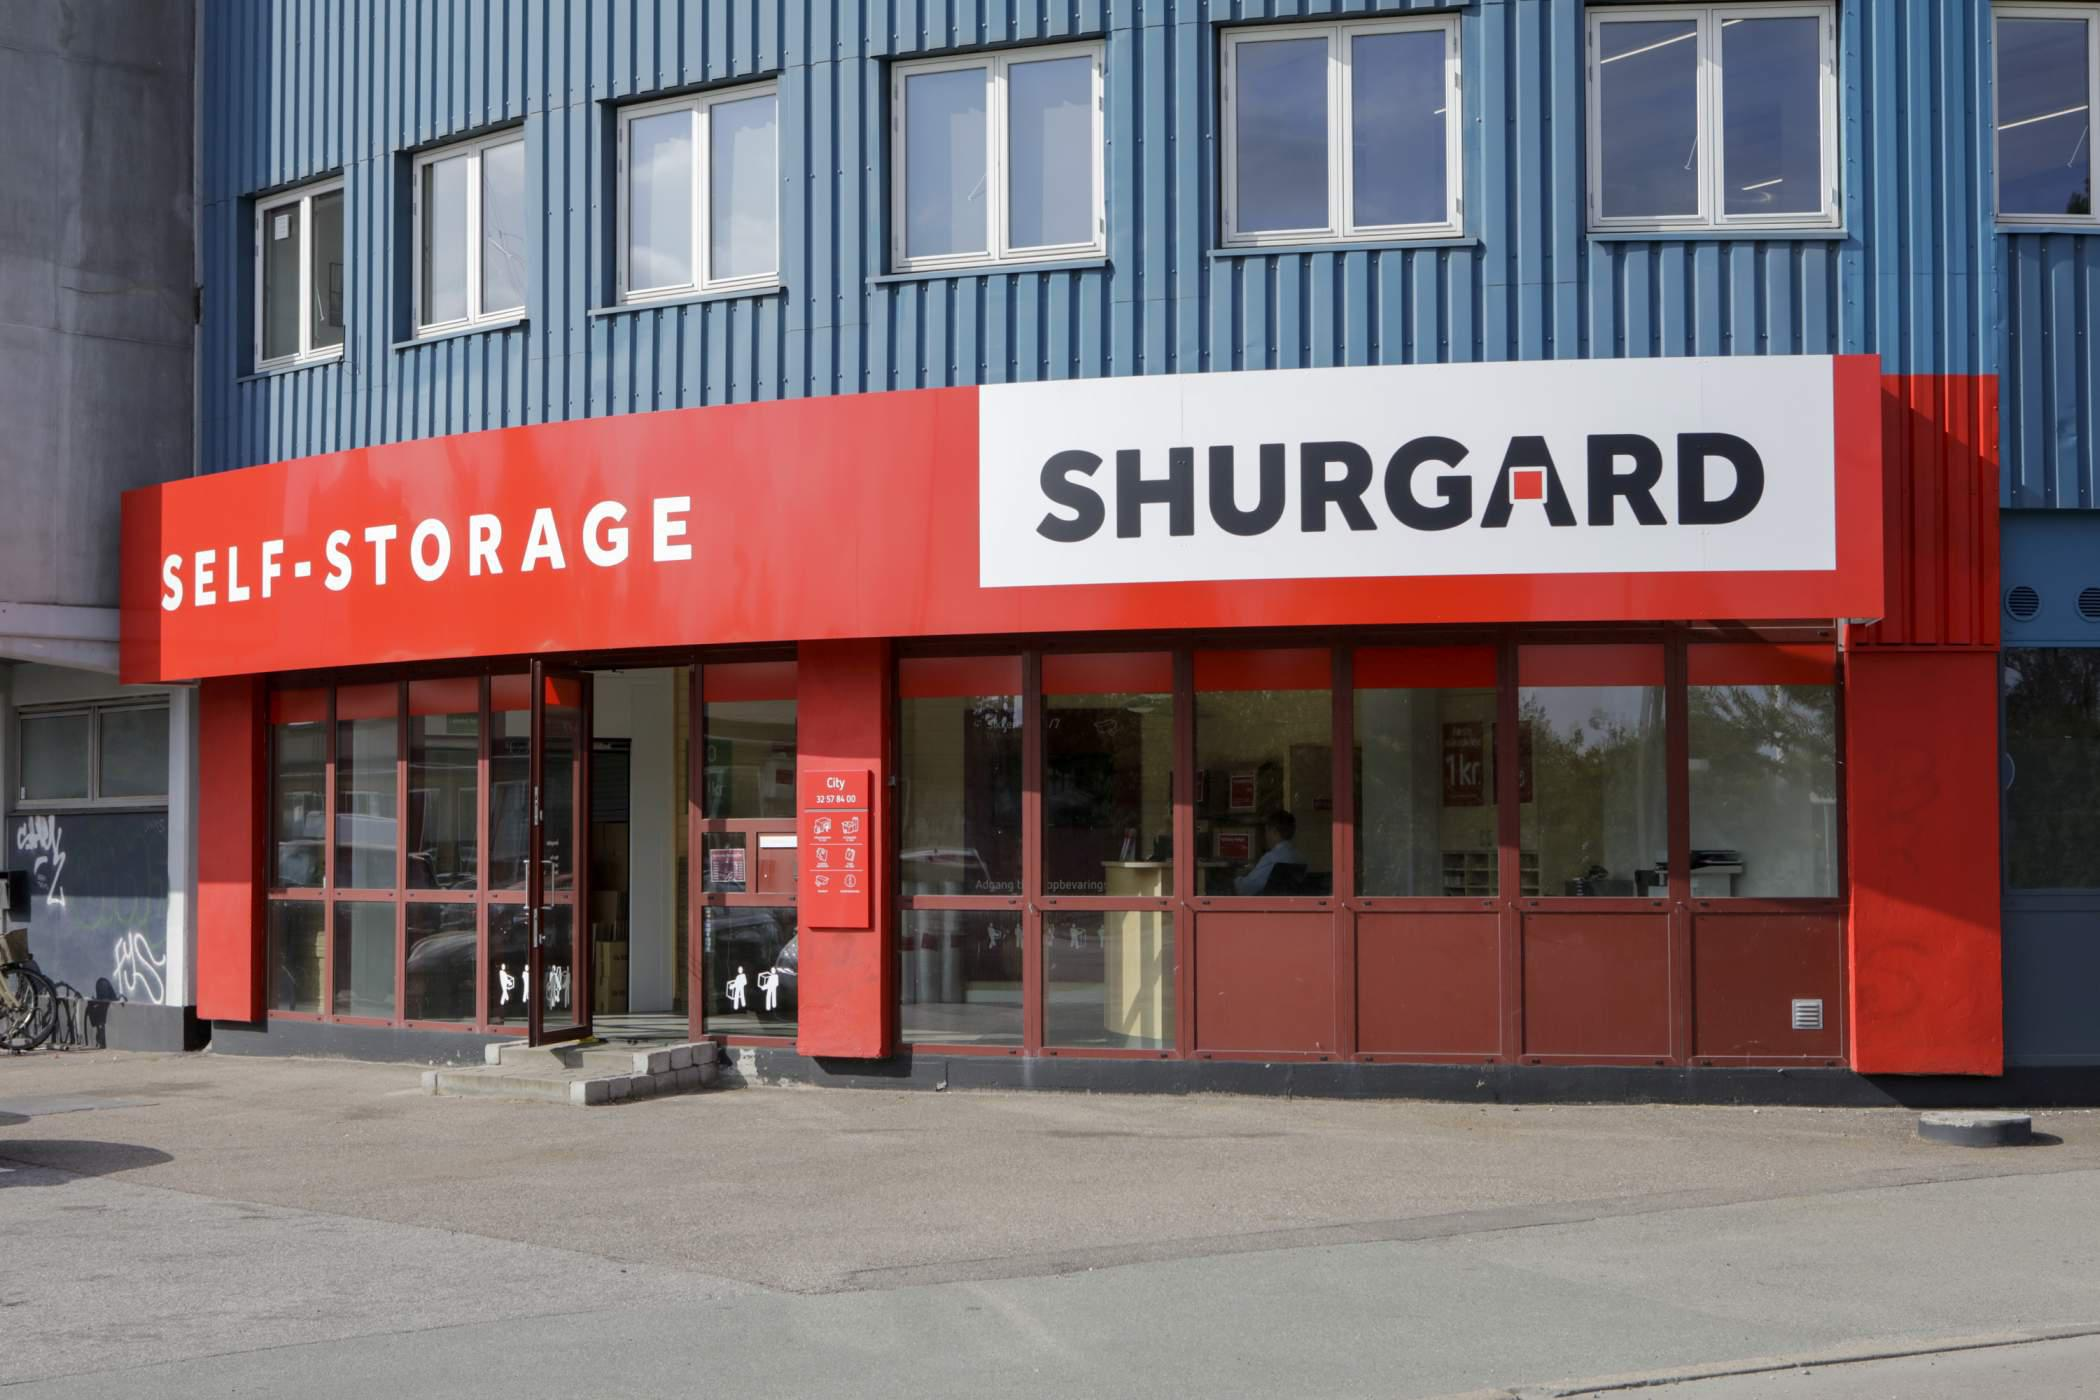 Shurgard Self-Storage City